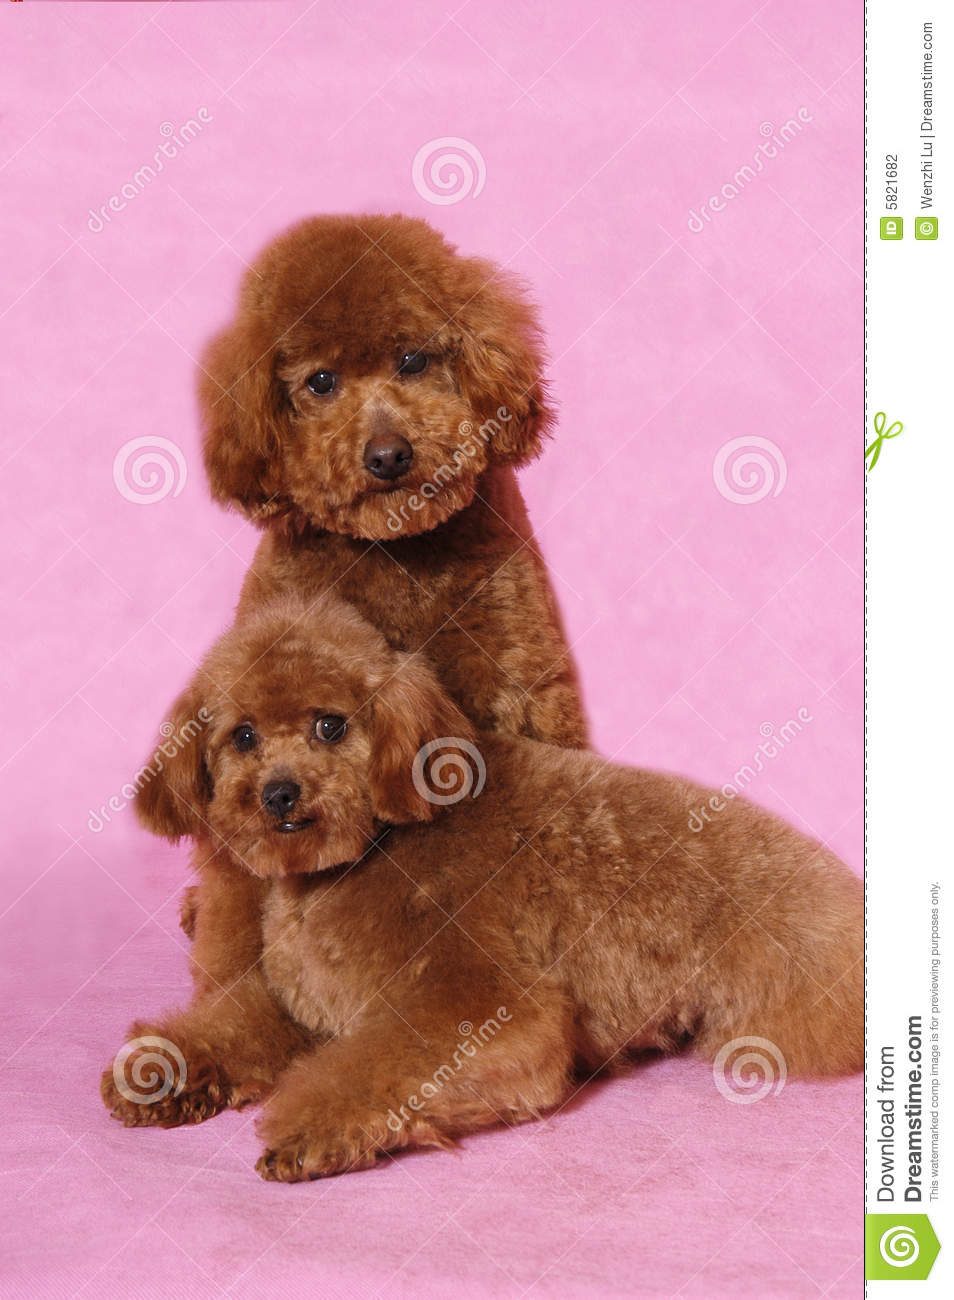 Toy Poodle teddy bear stock photo  Image of dogs, breed